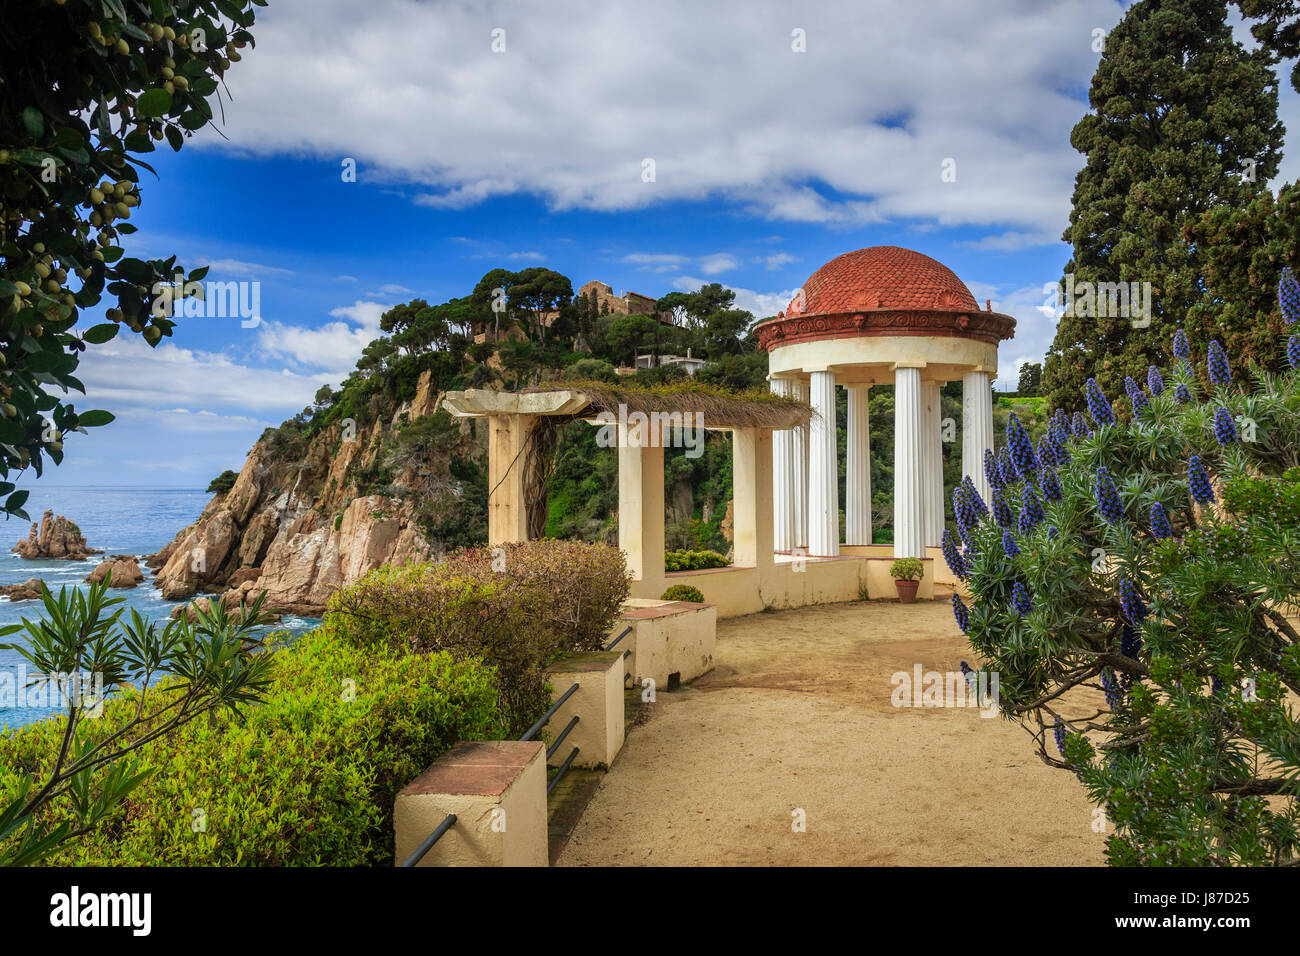 Carl Garden Stock Photos & Carl Garden Stock Images - Page 4 - Alamy